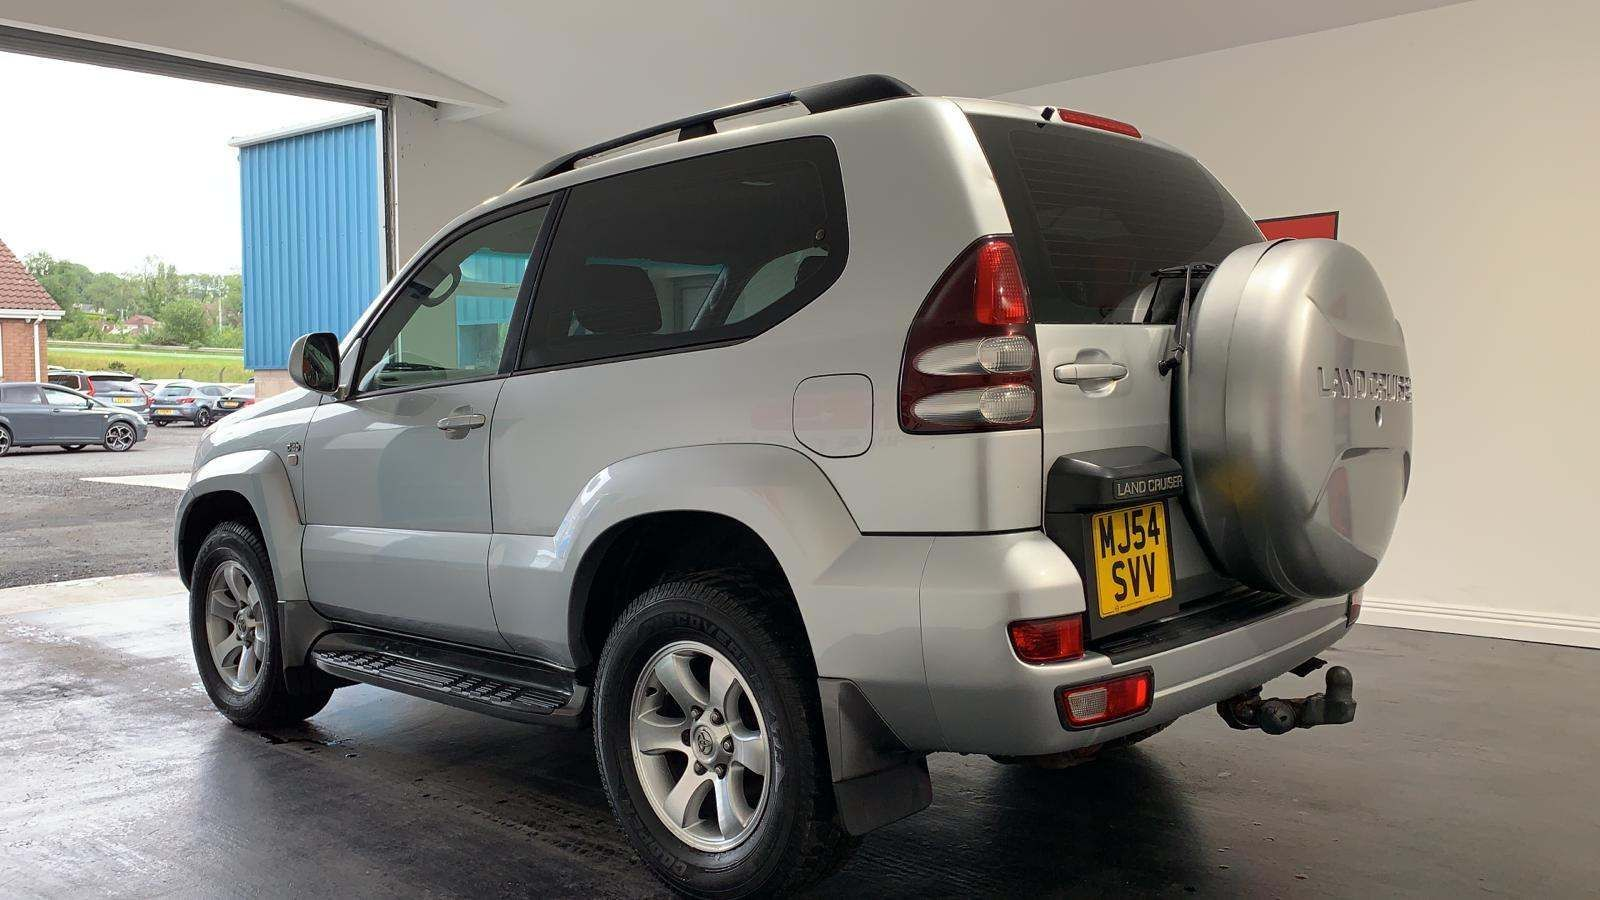 2004 TOYOTA Land Cruiser 3.0 D-4D LC3 Diesel Manual Short Wheel Base – J R S Commercials And Cars Dungannon full